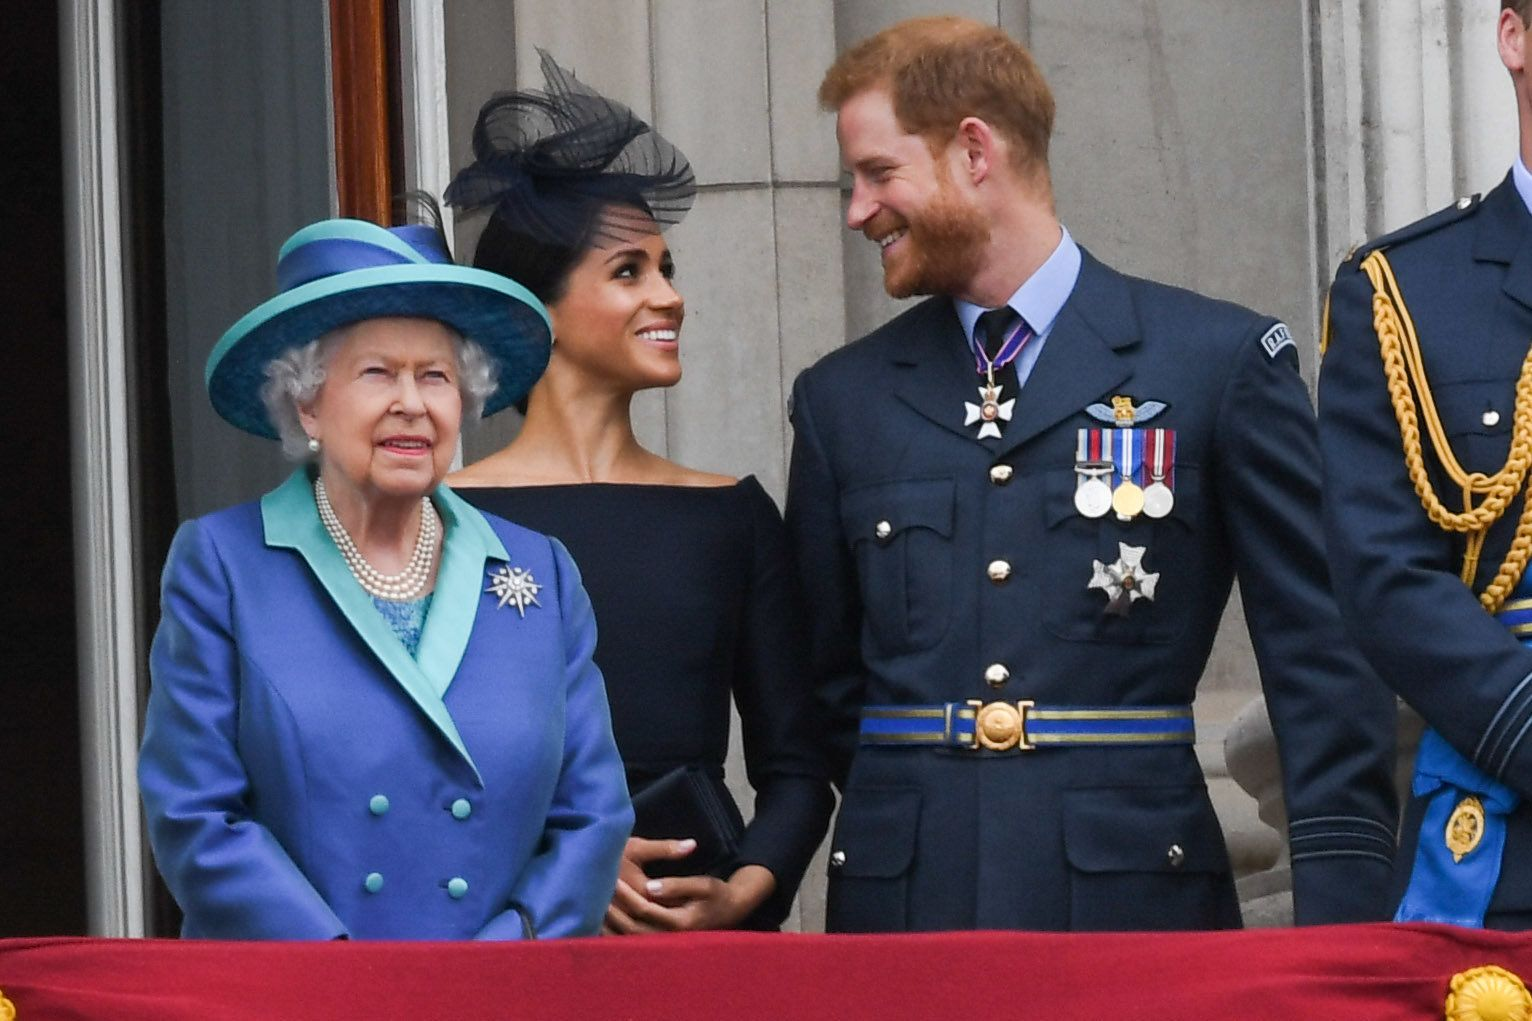 Queen Elizabeth ll, Meghan, Duchess of Sussex and Prince Harry, Duke of Sussex stand on the balcony of Buckingham Palace to mark the centenary of the Royal Air Force.